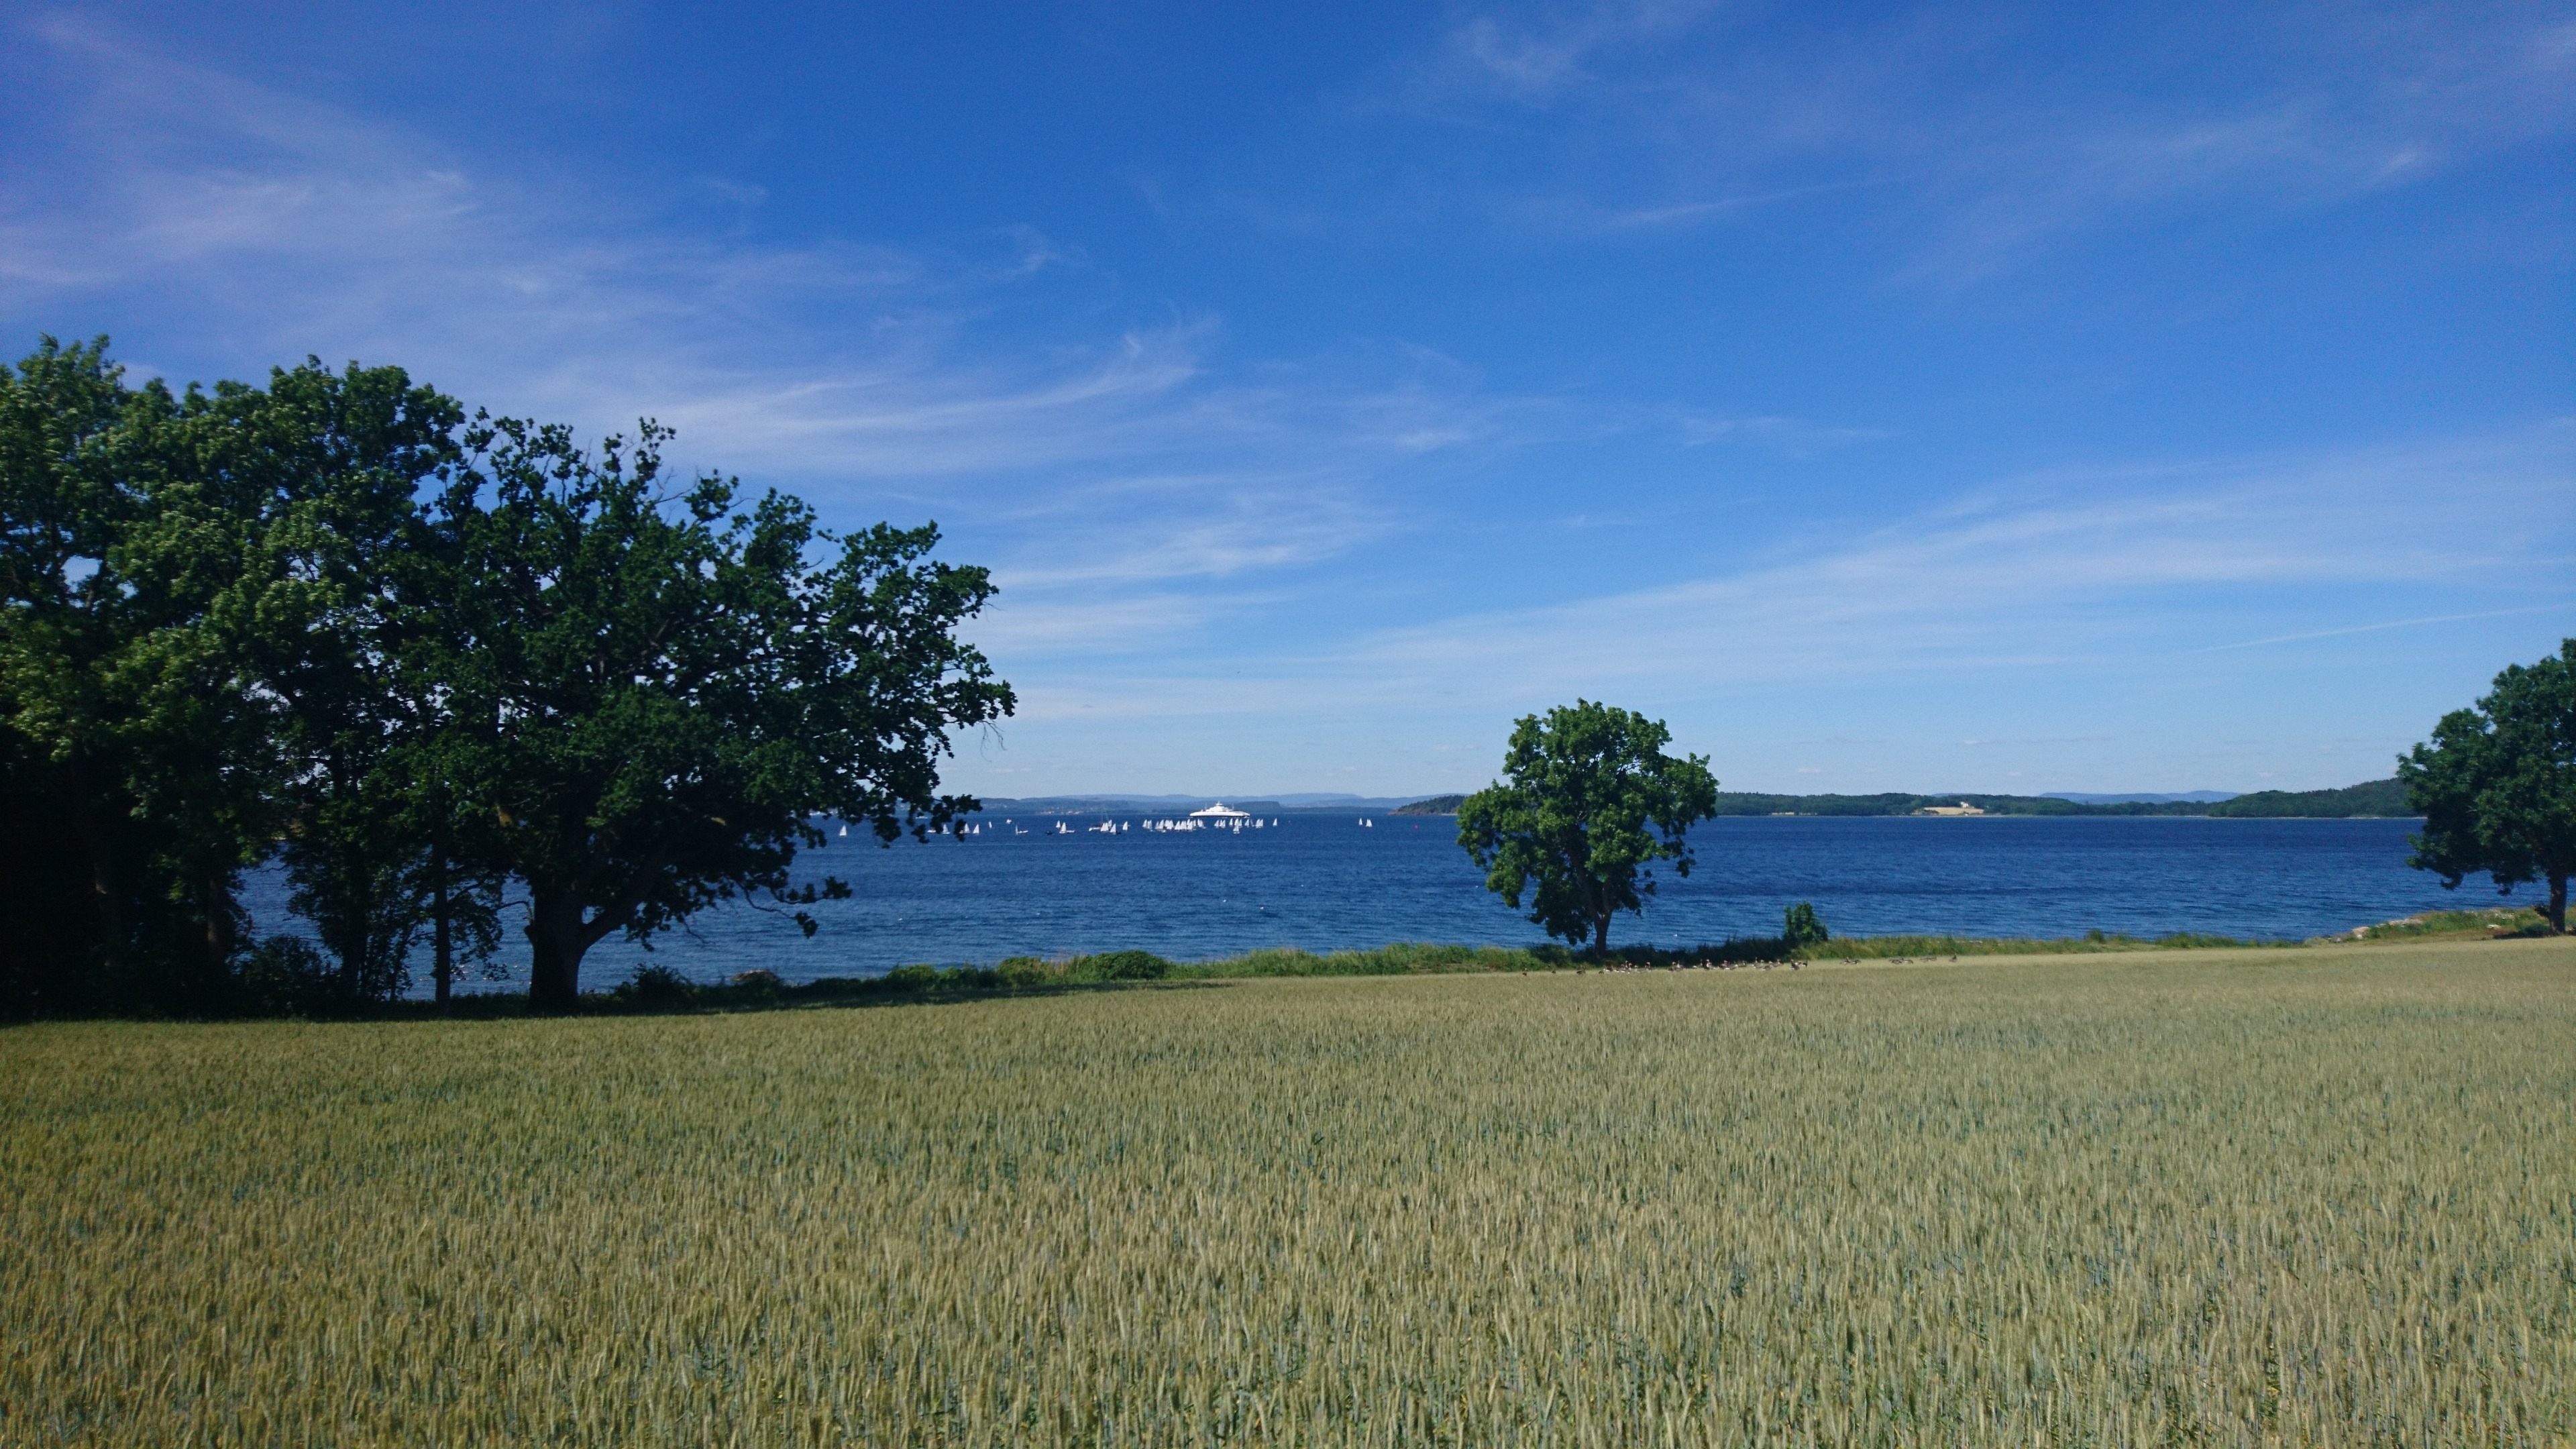 Headwater - Cycling The Oslofjord, Self-guided